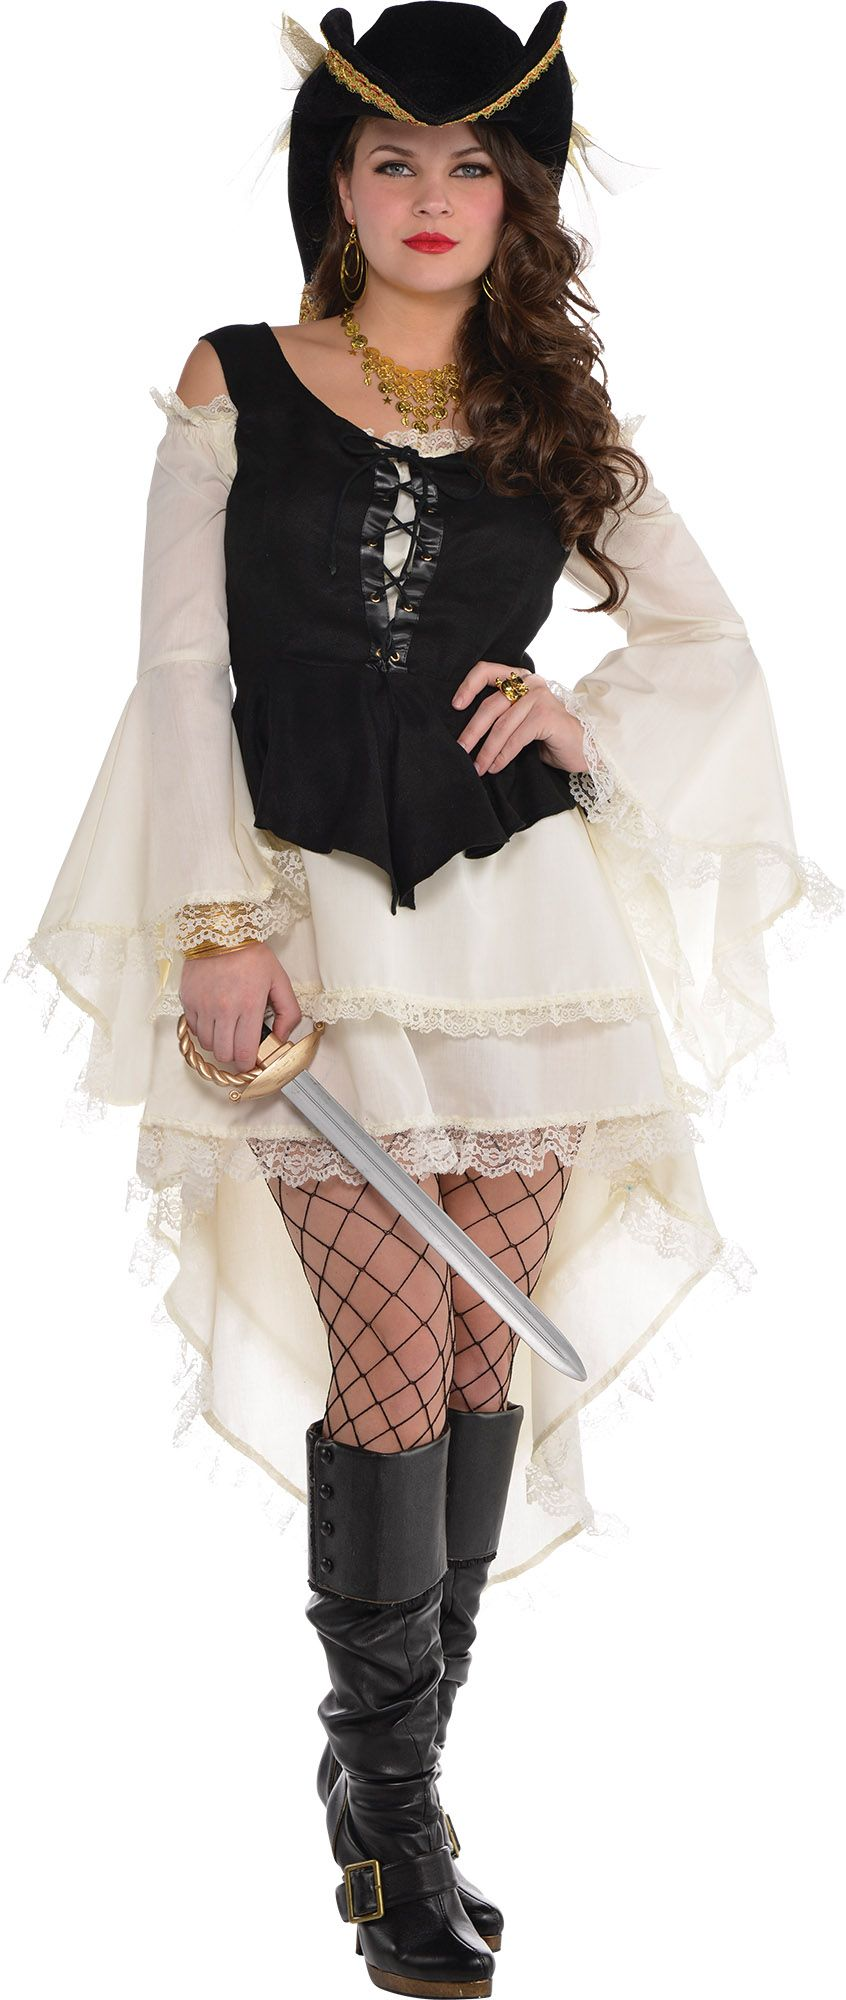 Create Your Own Look - Female Pirate Dress #2